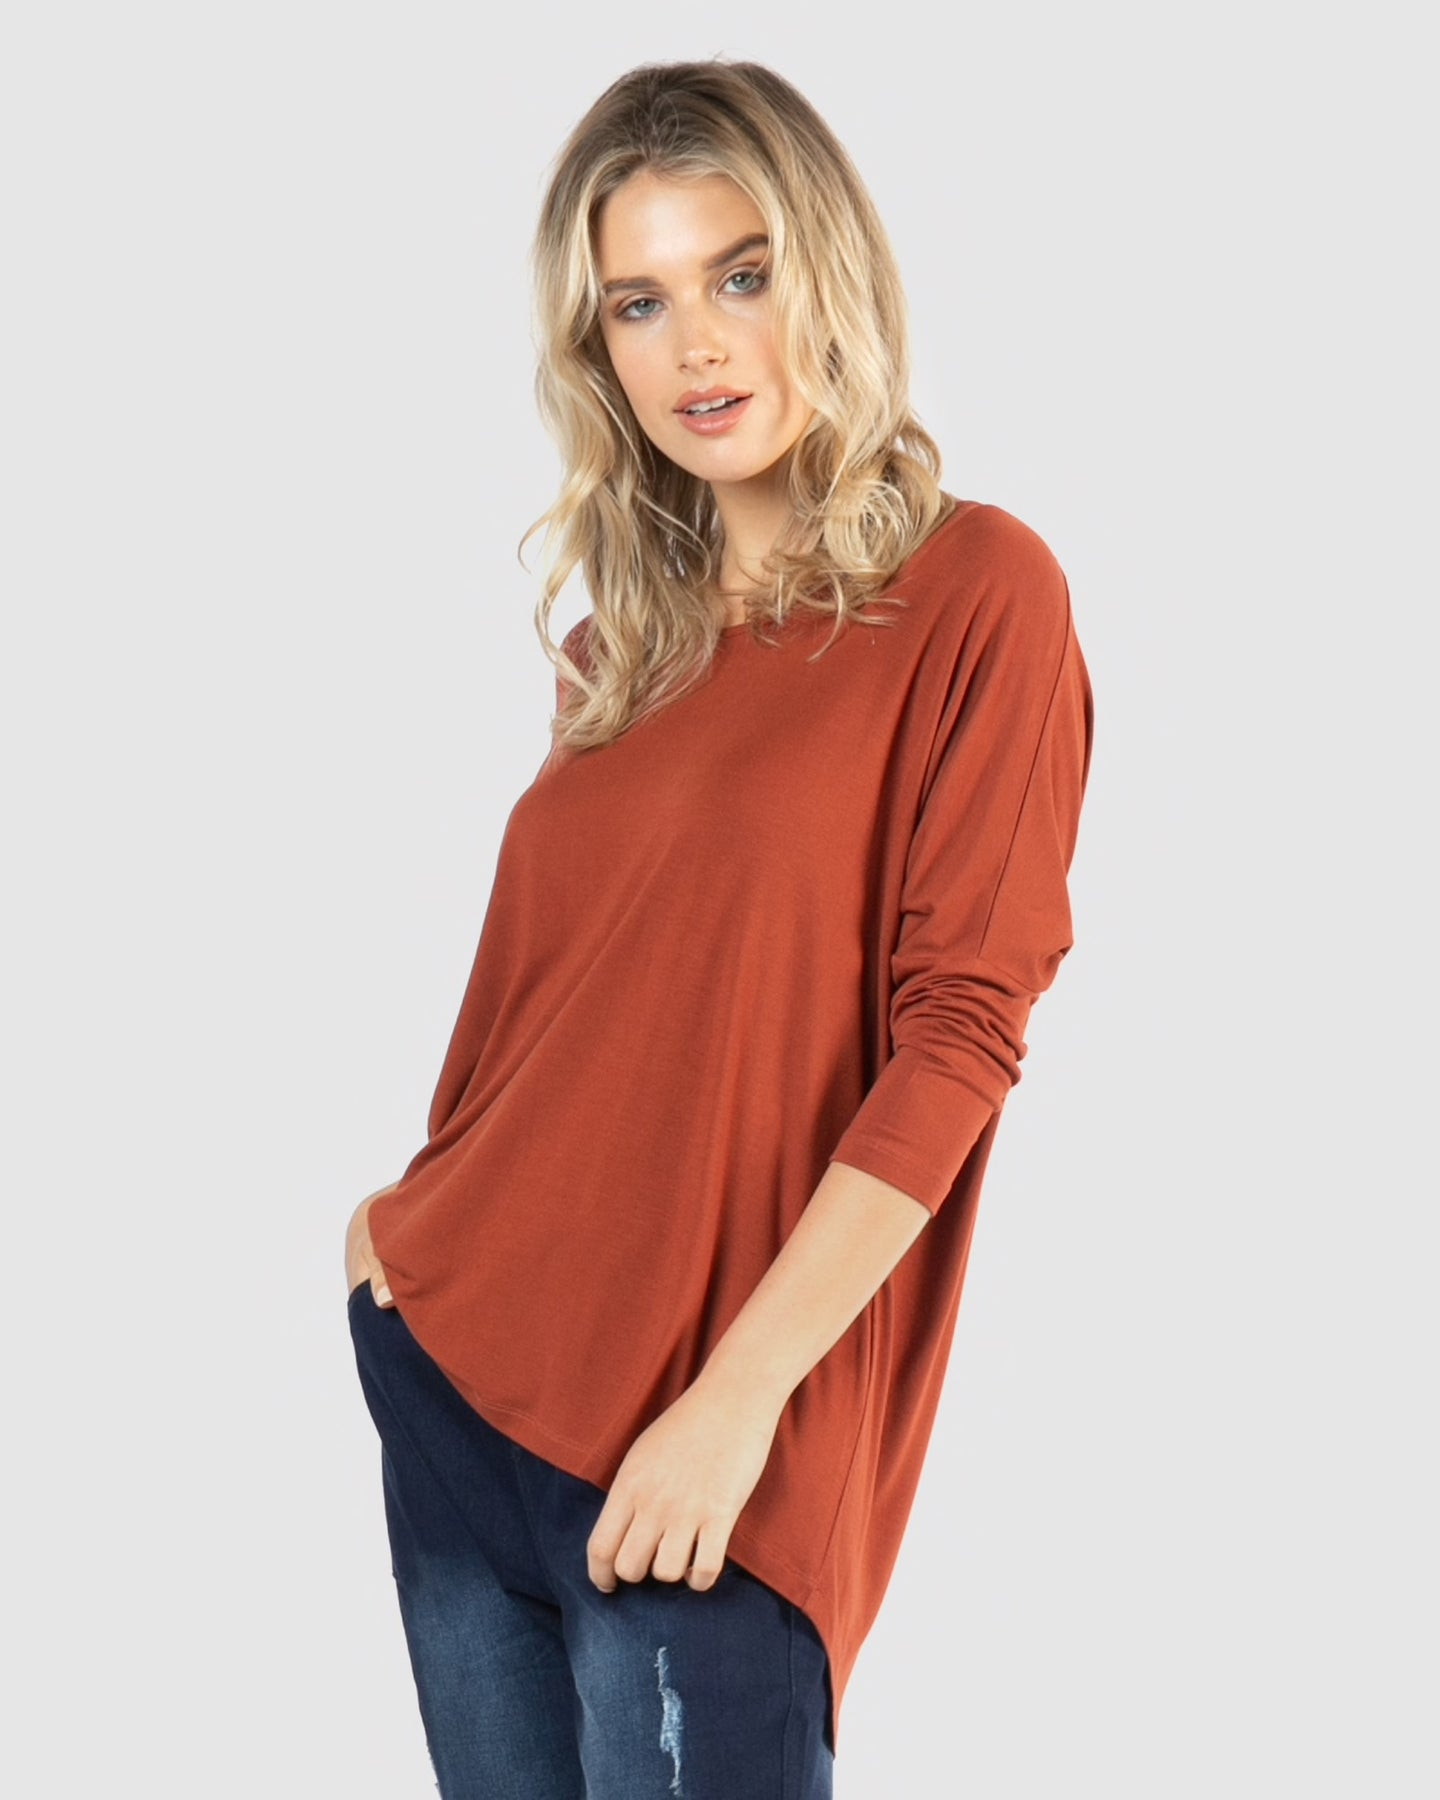 Betty Basics Milan 3/4 Sleeve Top - Terracotta